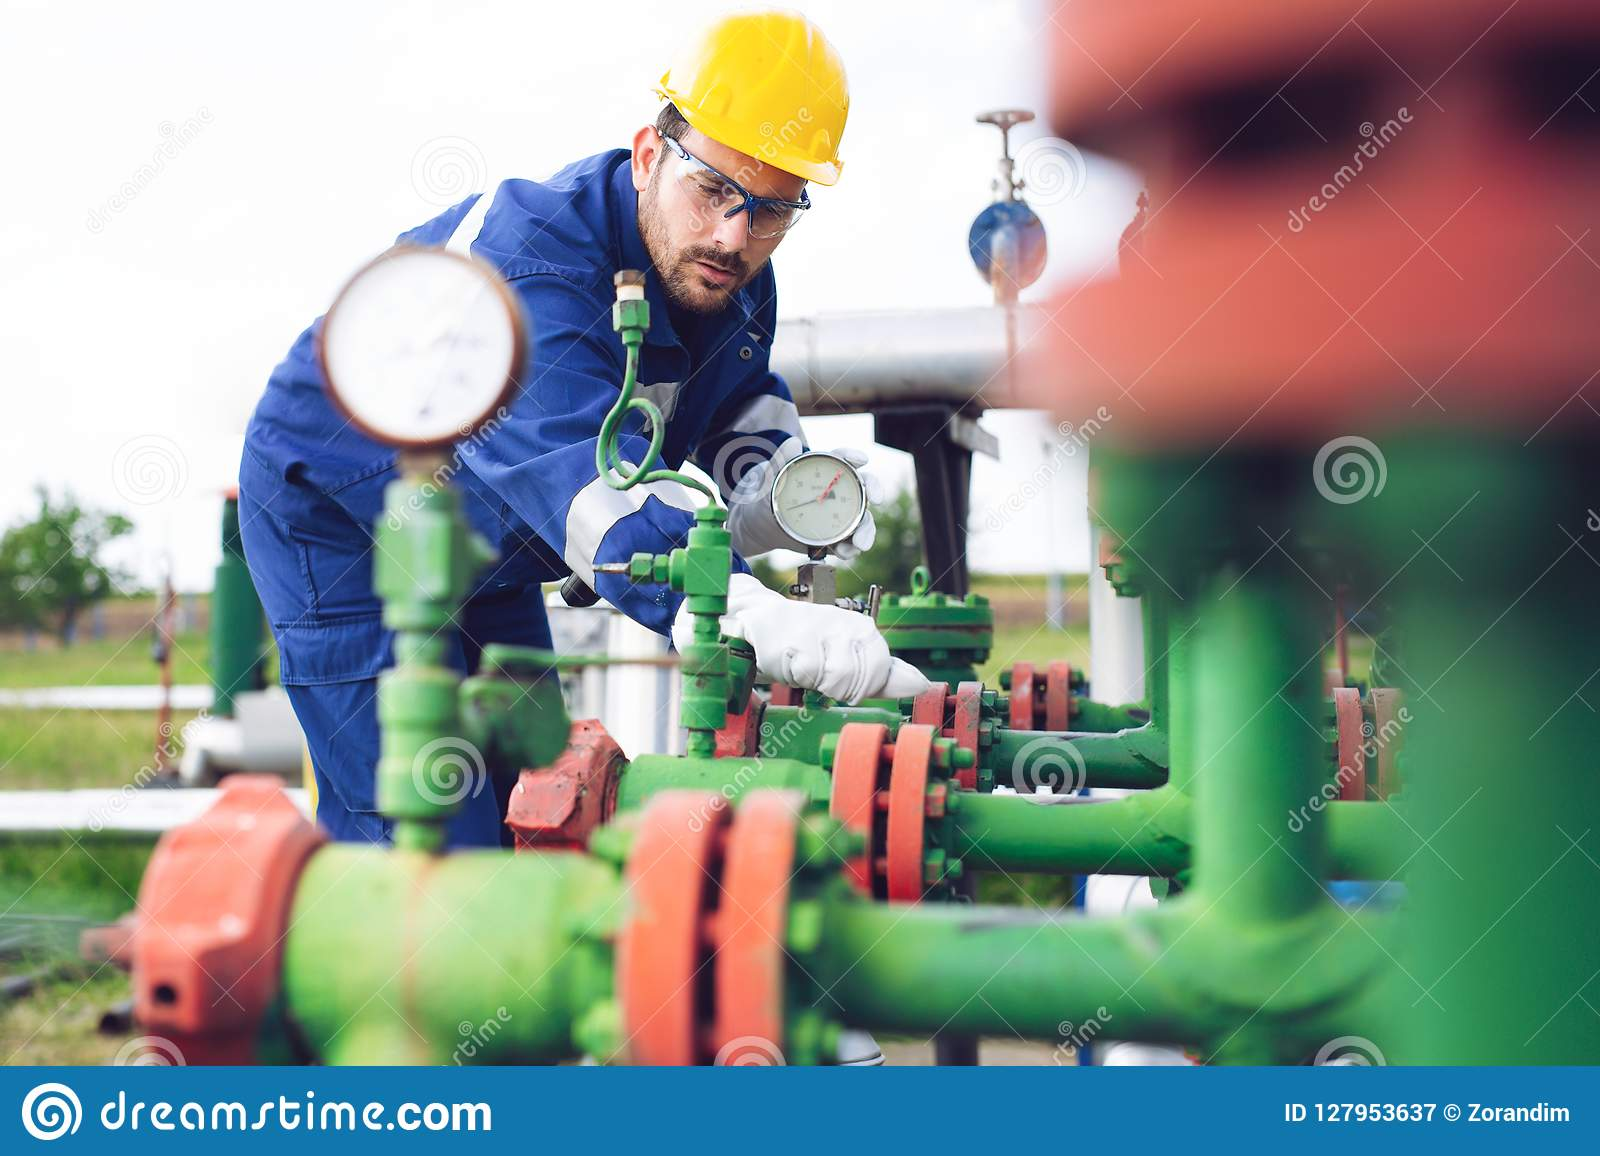 Operator recording operation of oil and gas process at oil and rig plant